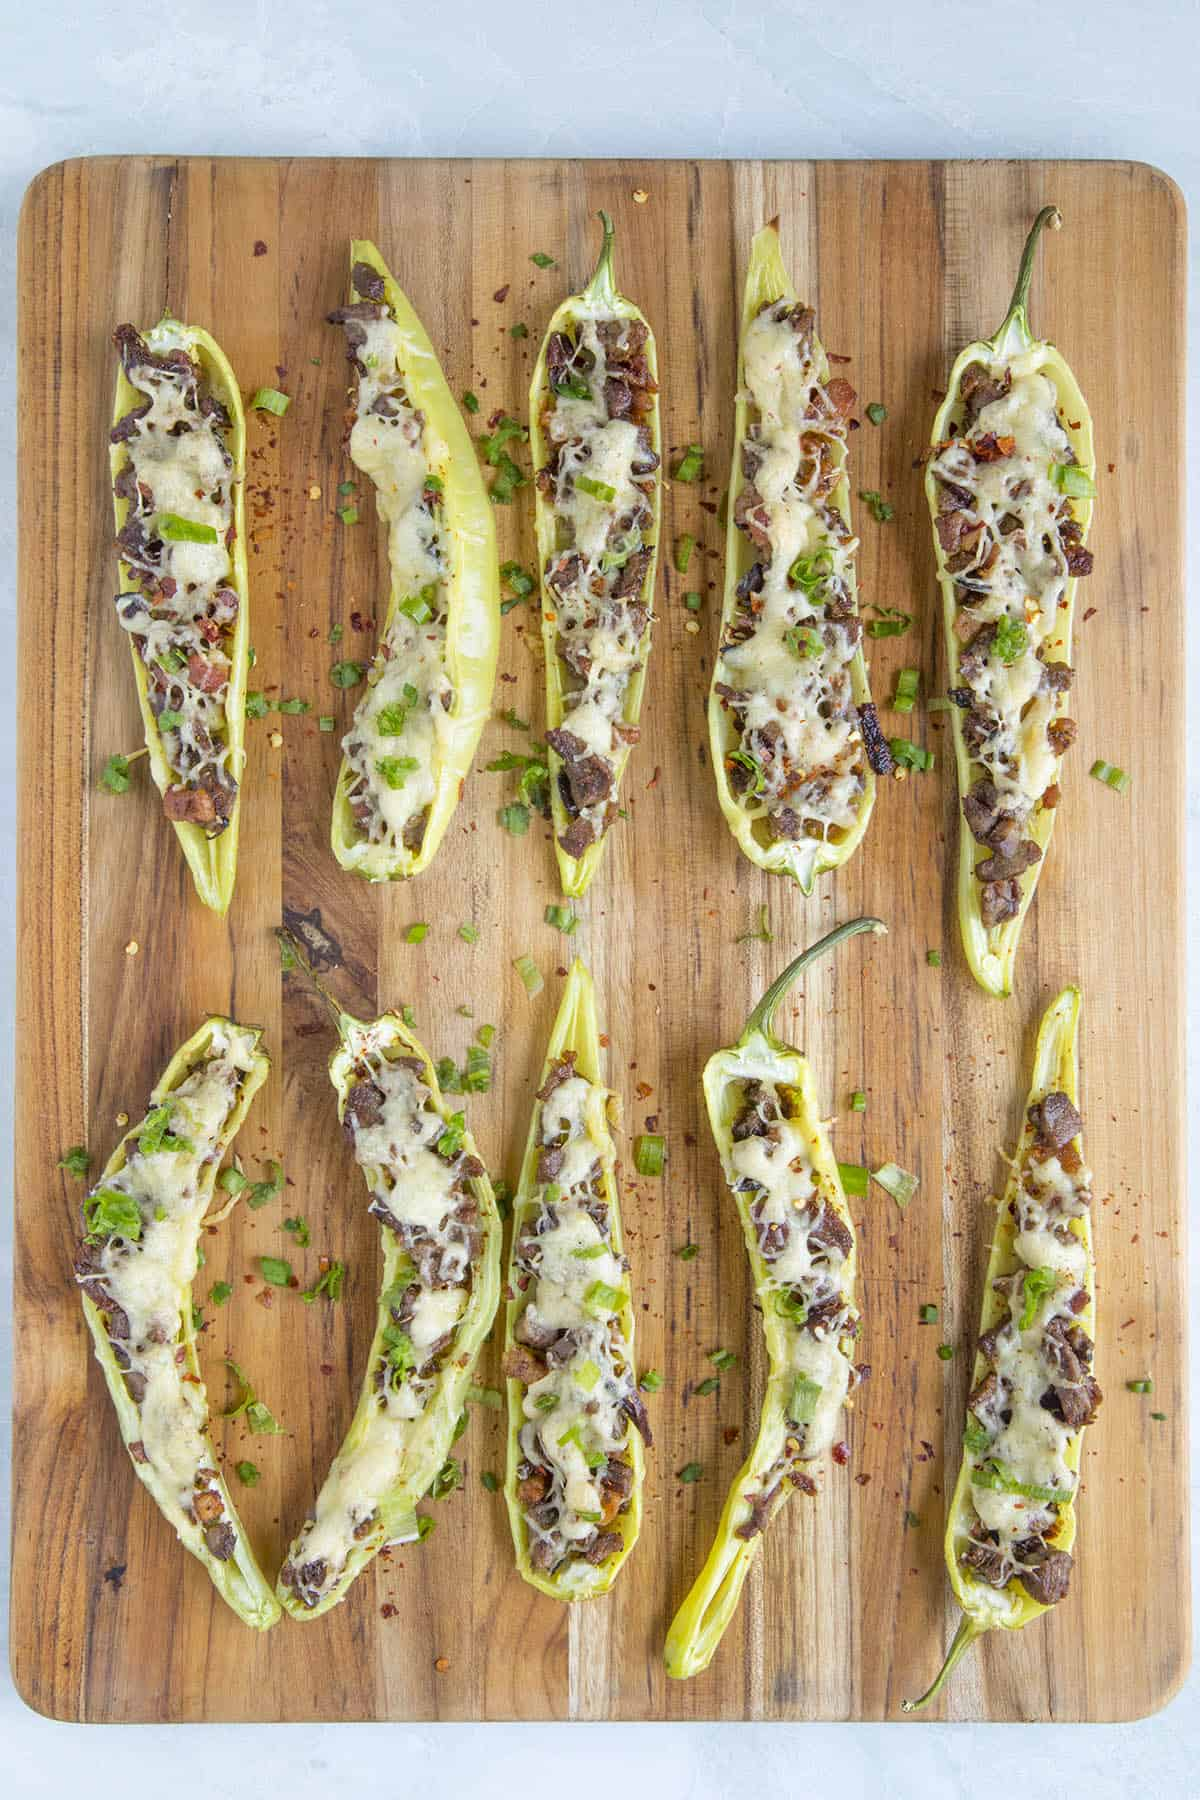 Stuffed Banana Peppers laid out on a serving board